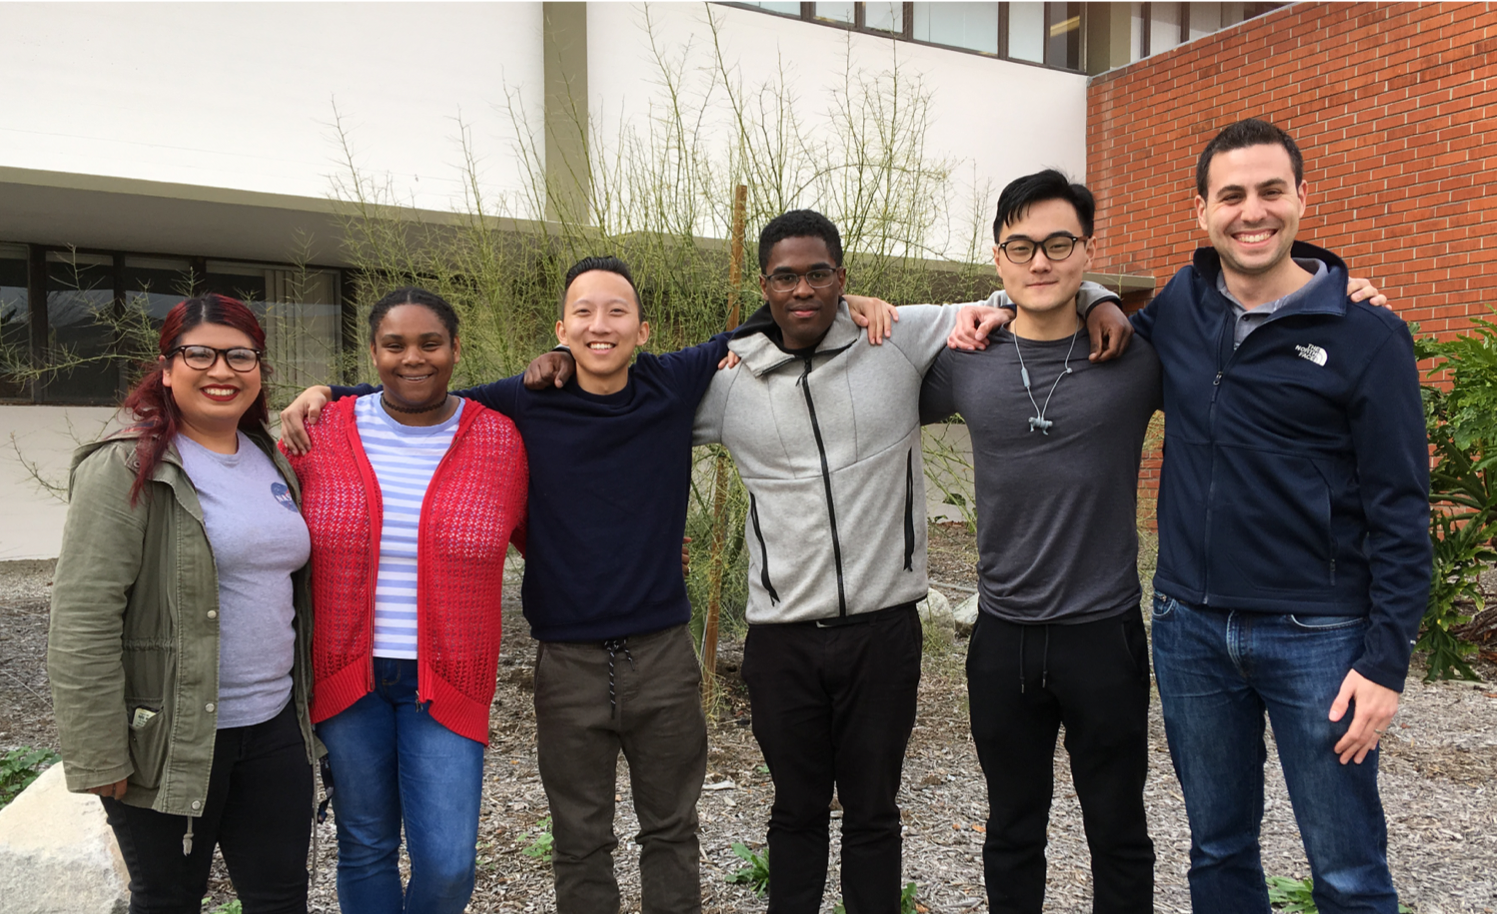 Dr. Nerenberg's 2018-2019 Research Group